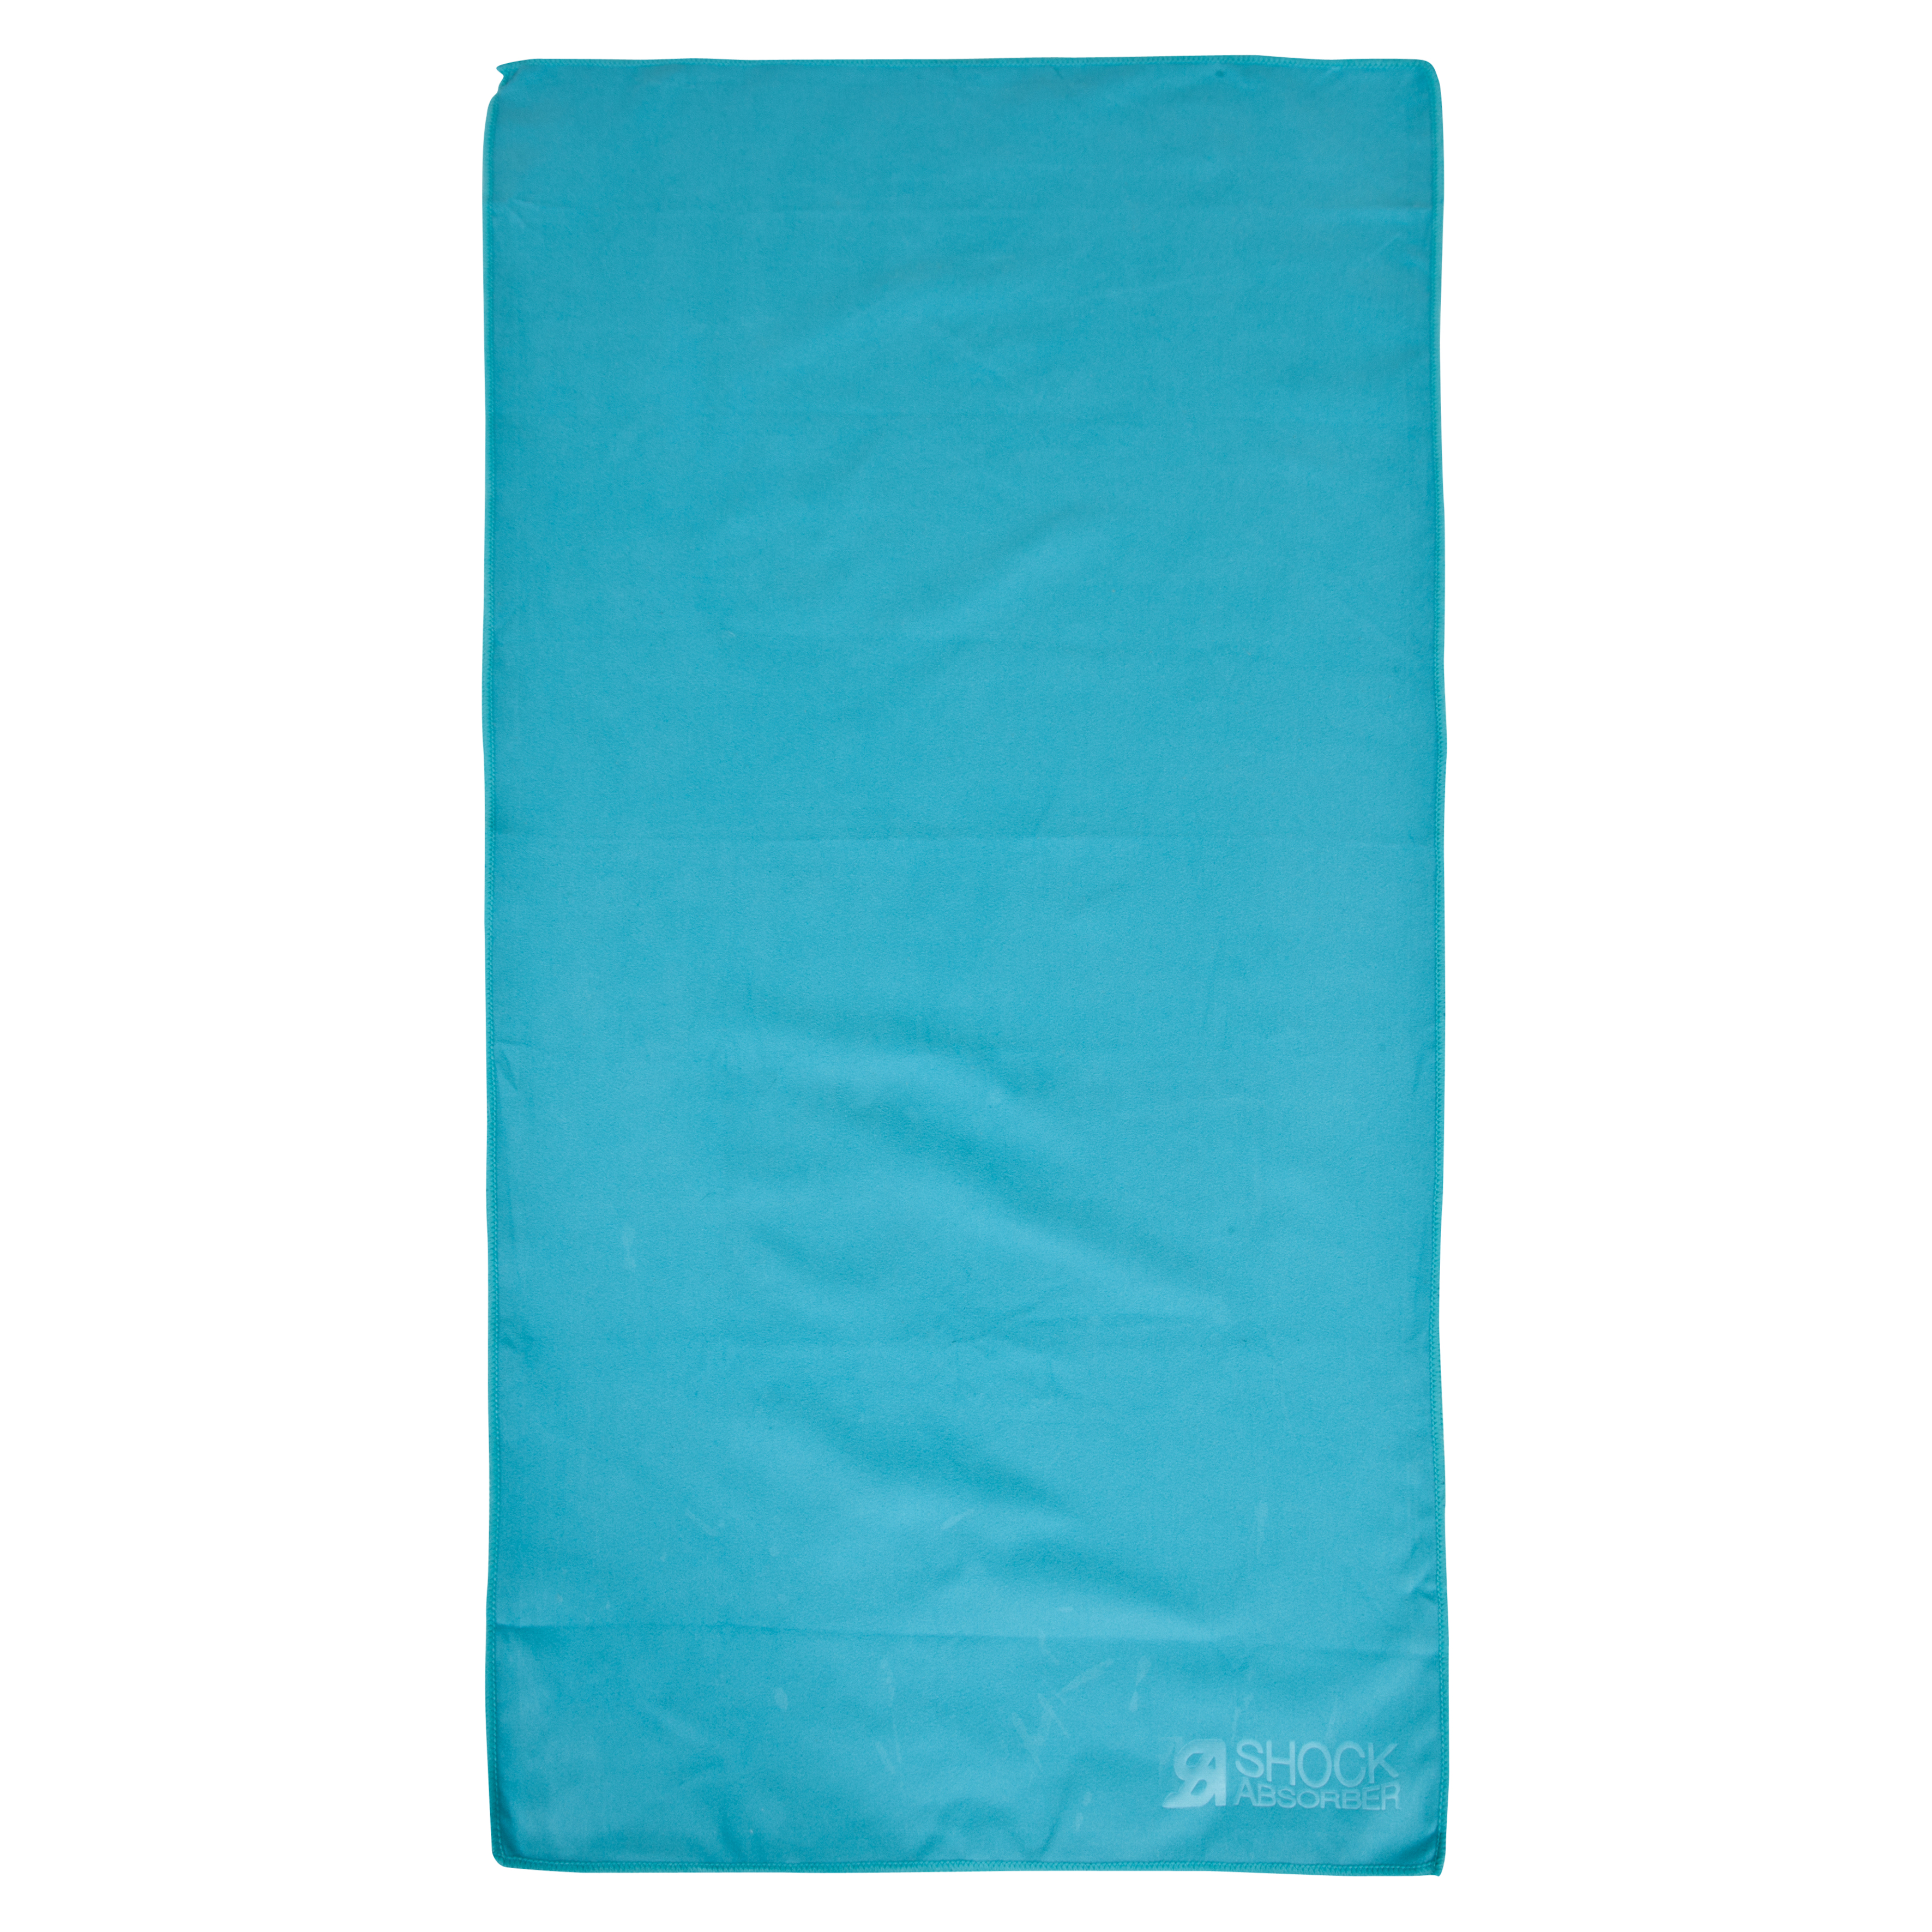 Shock Absorber Small Ultra Compact Microfibre Towel - Blue